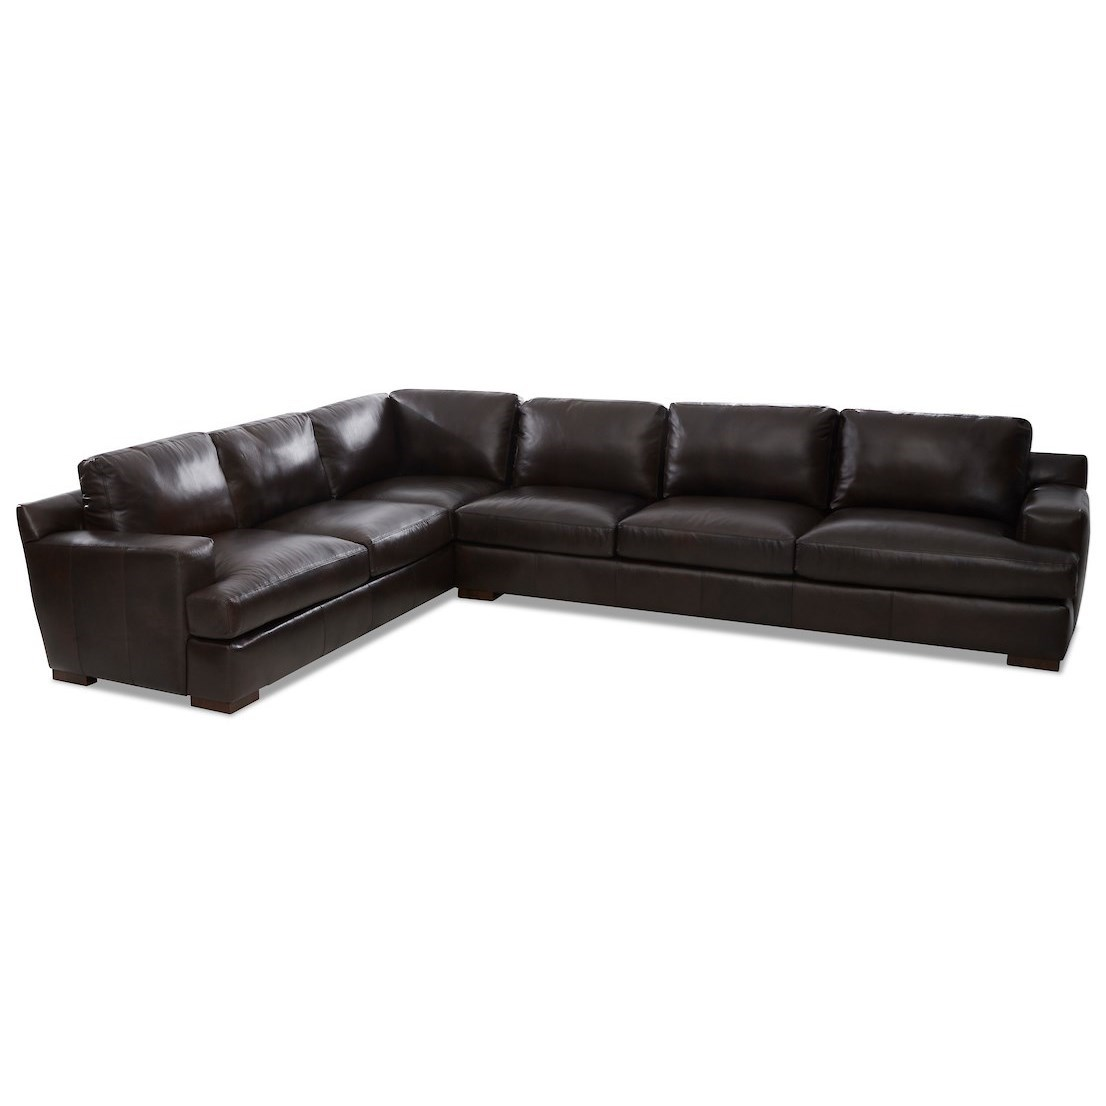 Lyon 5-Seat Sectional Sofa w/ RAF Sofa by Klaussner at Johnny Janosik